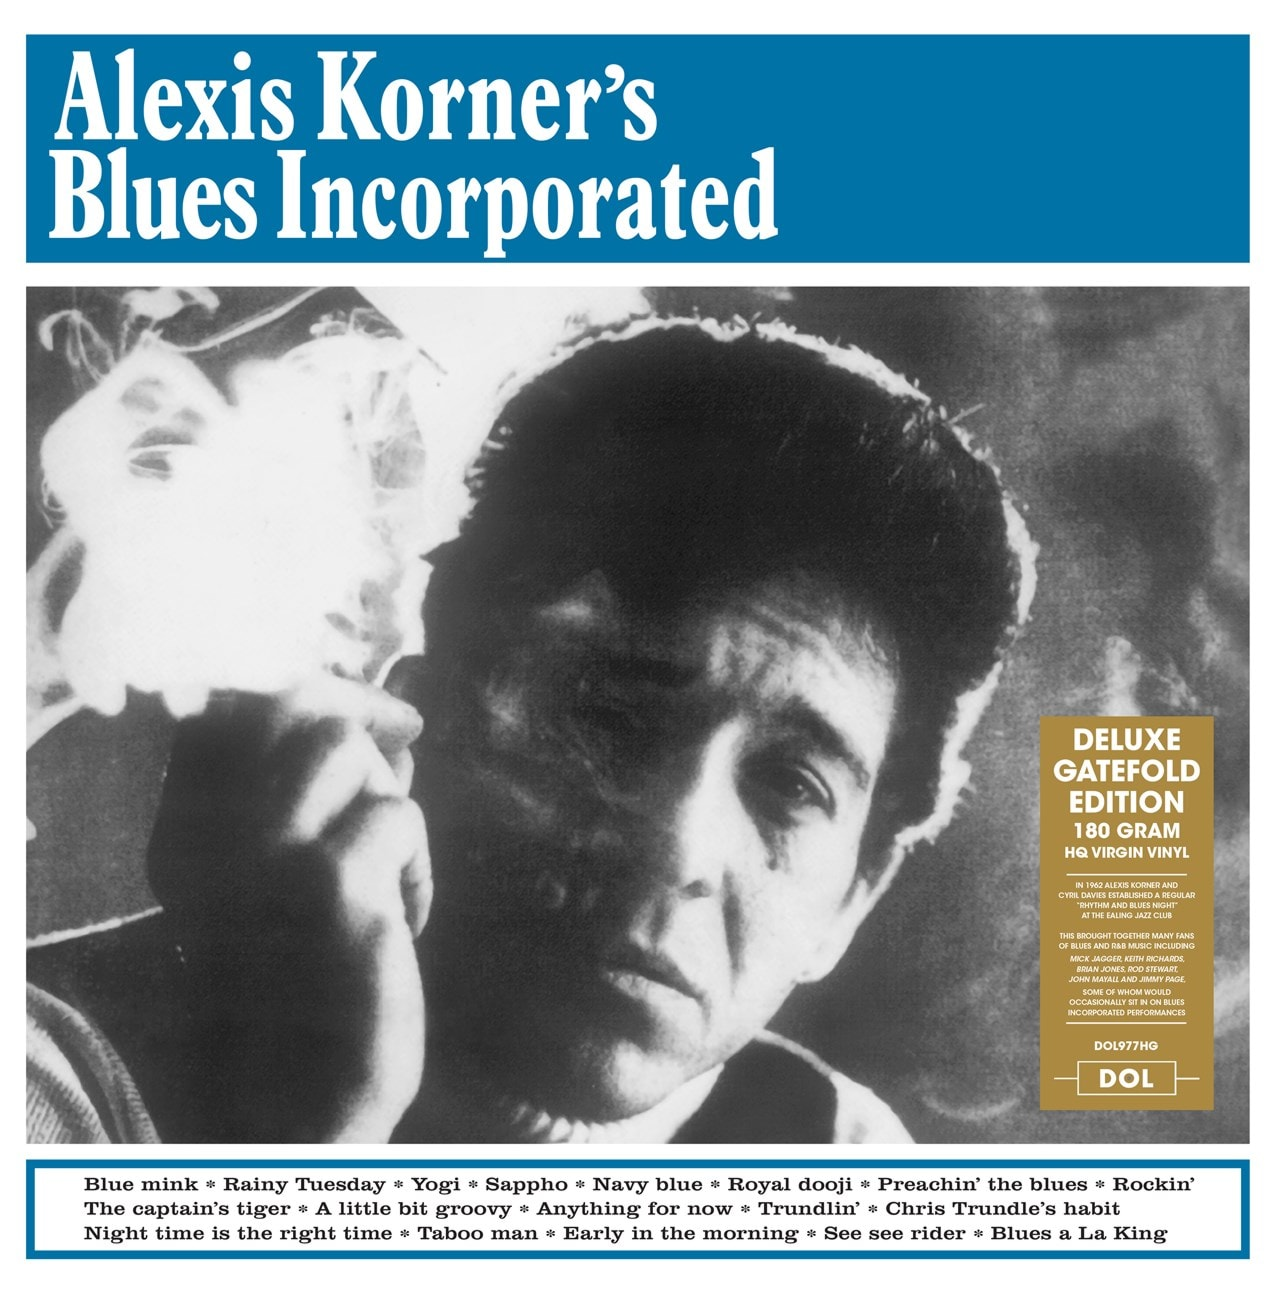 Alexis Korner's Blues Incorporated - 1